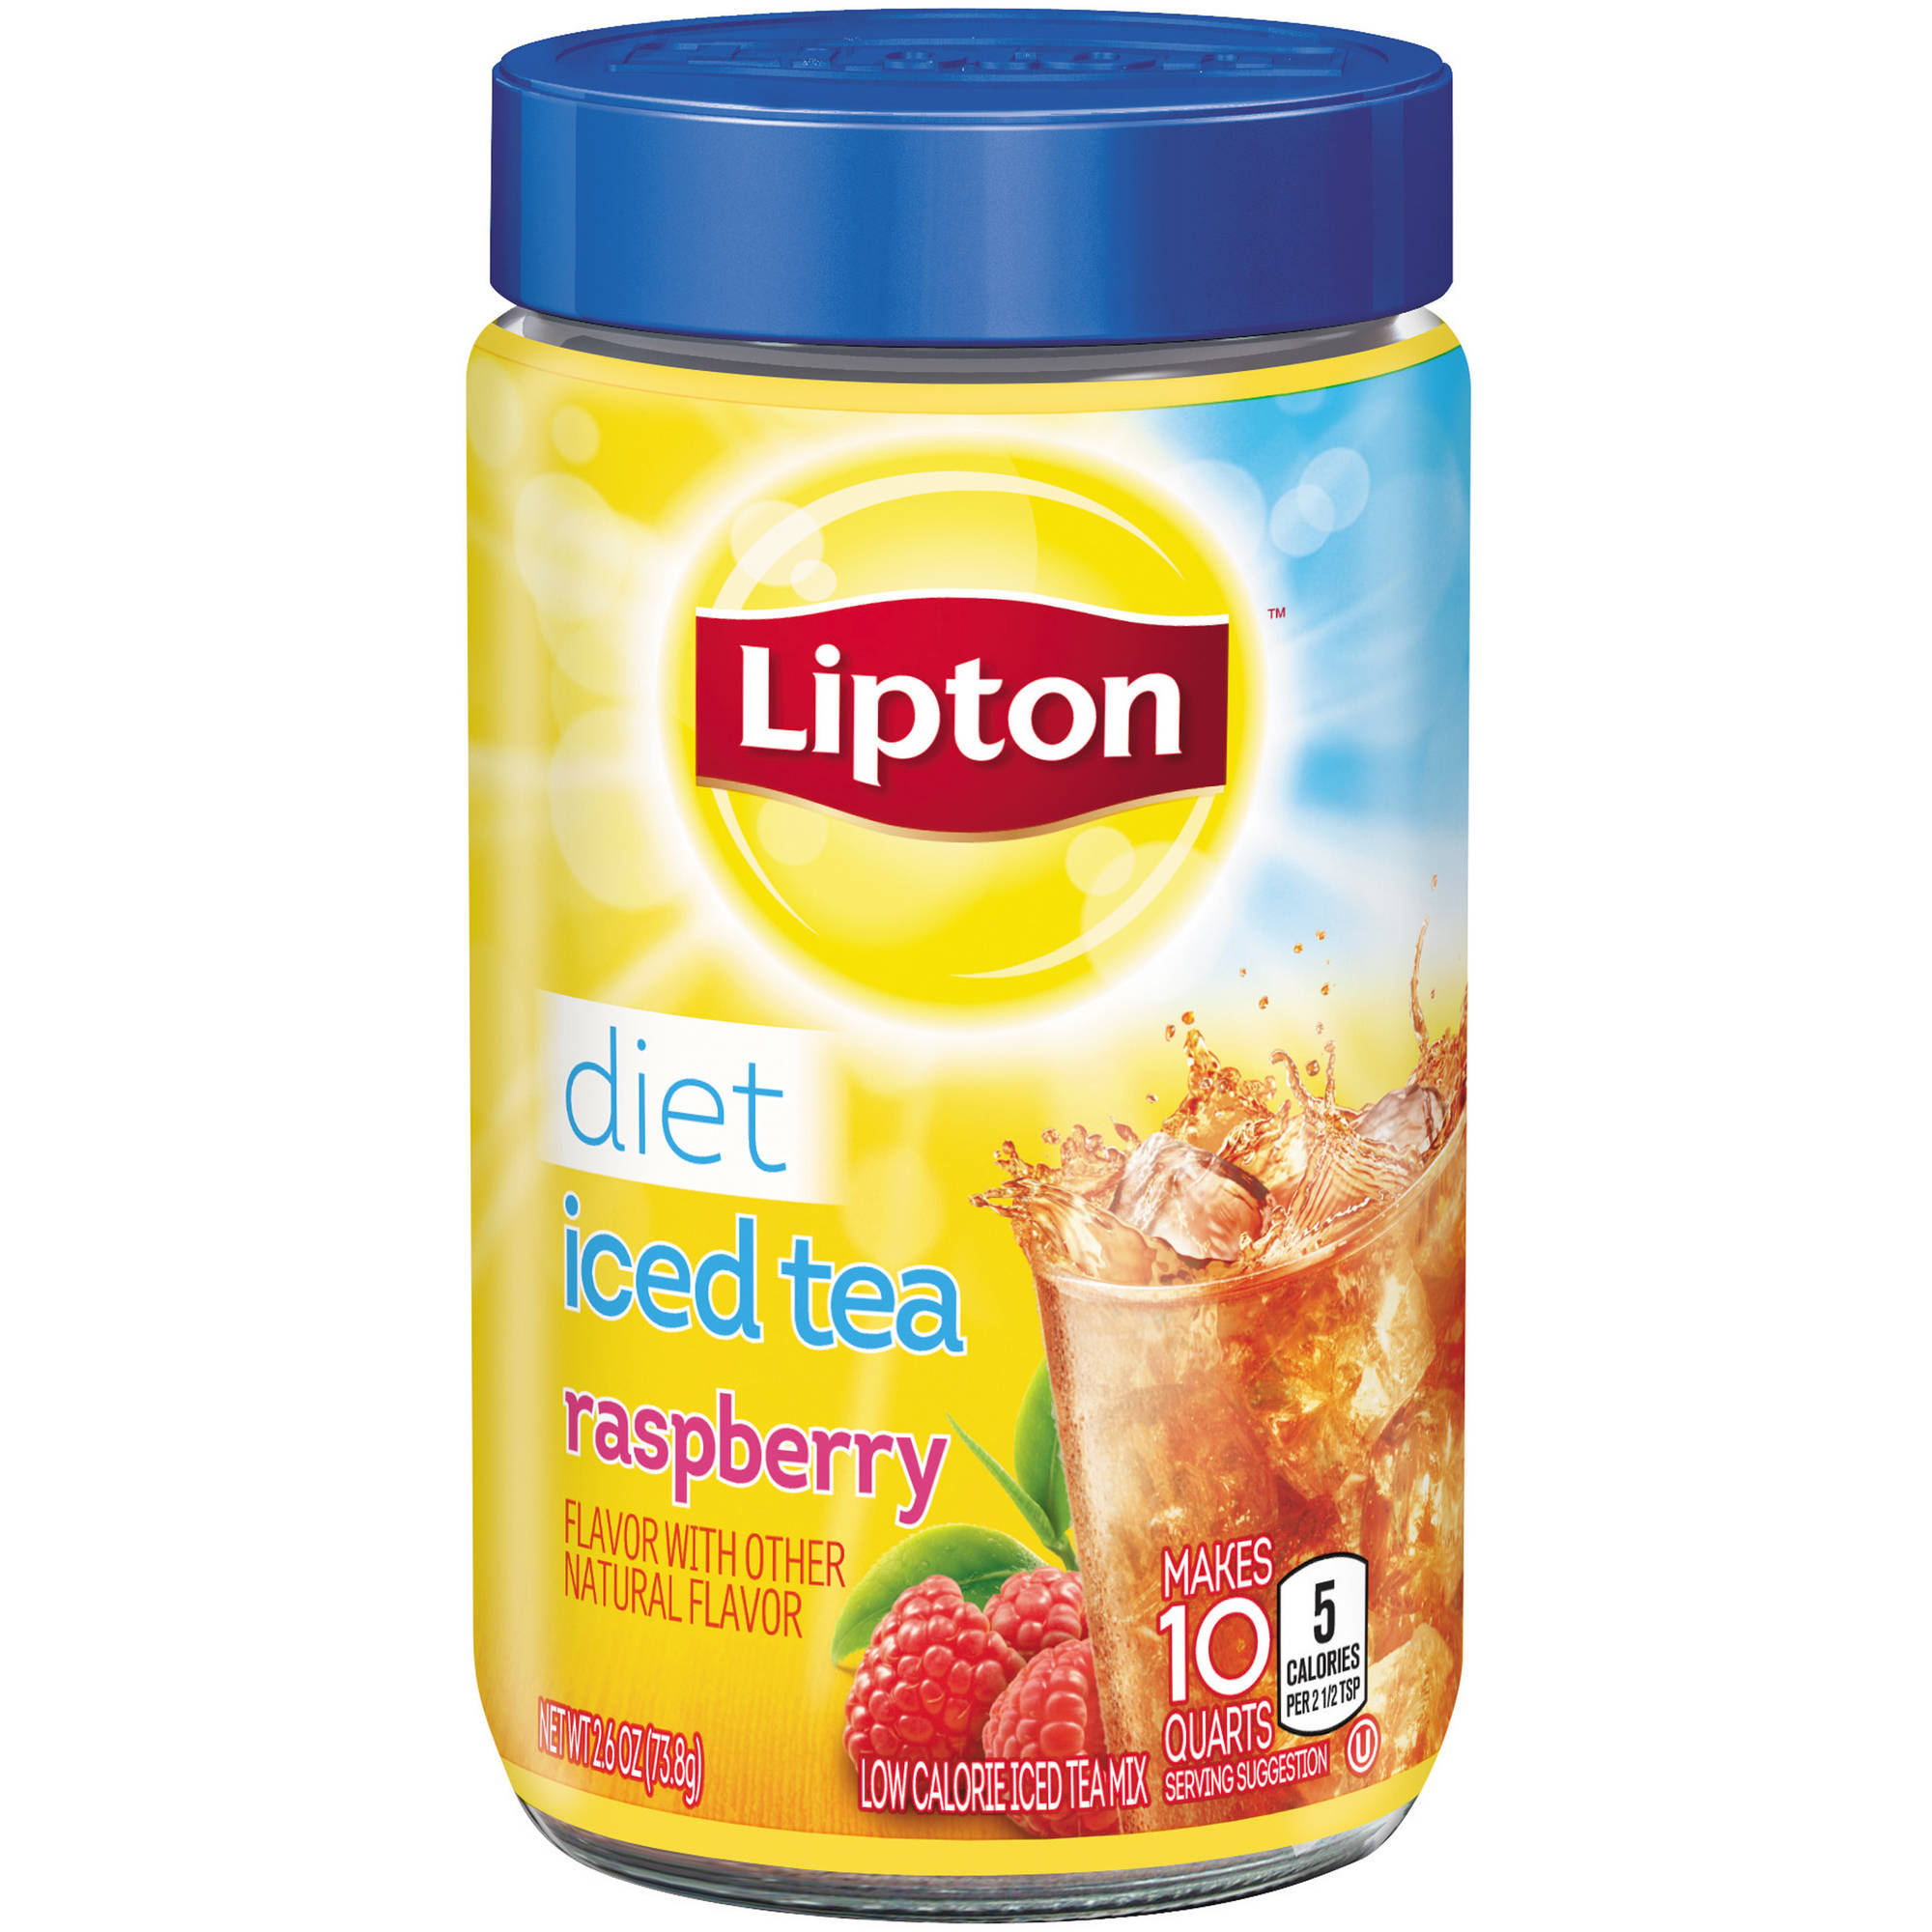 Lipton Diet Raspberry Iced Tea Mix, 10 qt